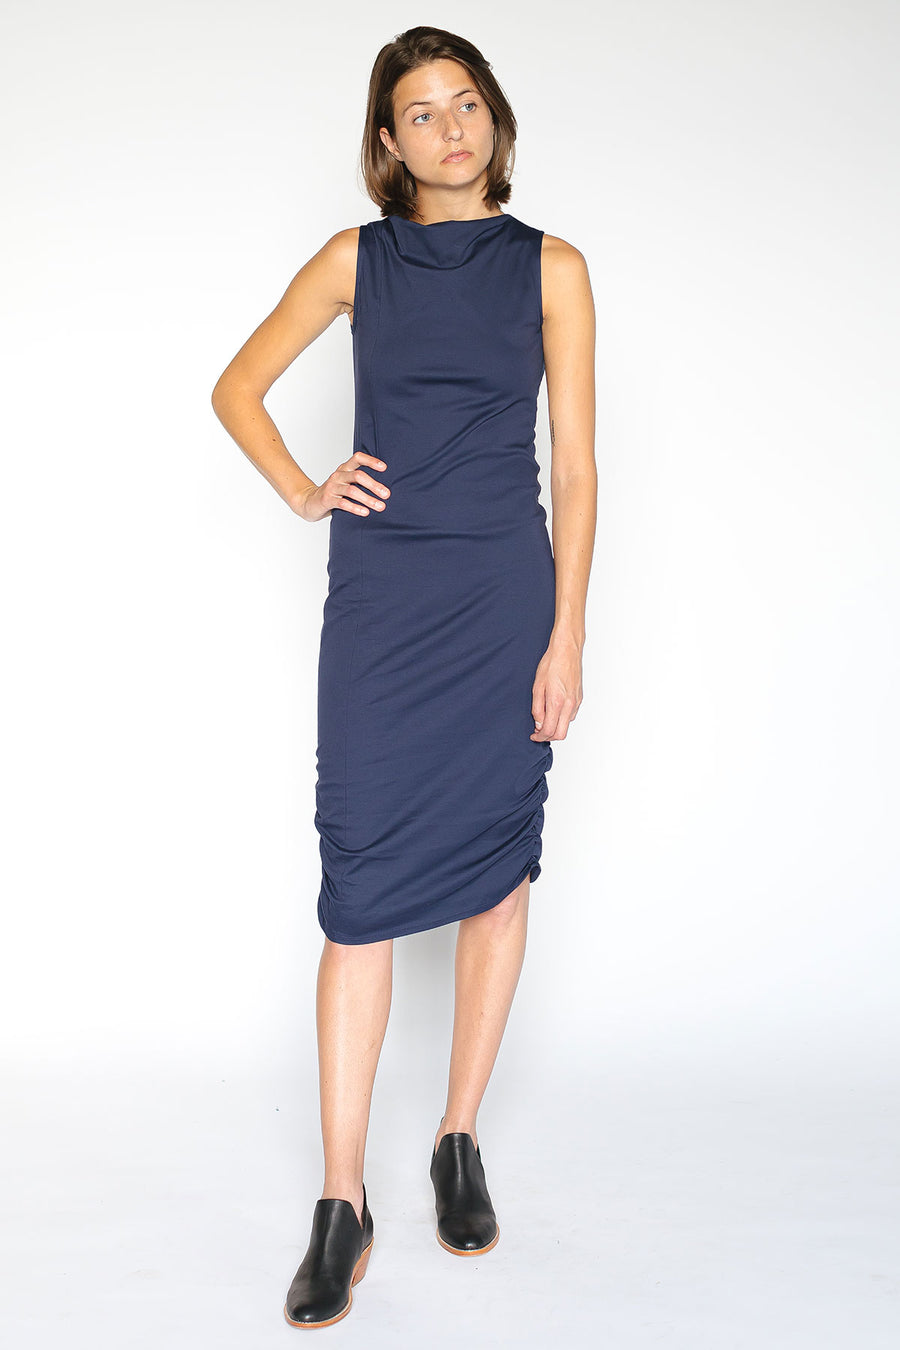 Sleeveless navy dress with asymmetrical neckline